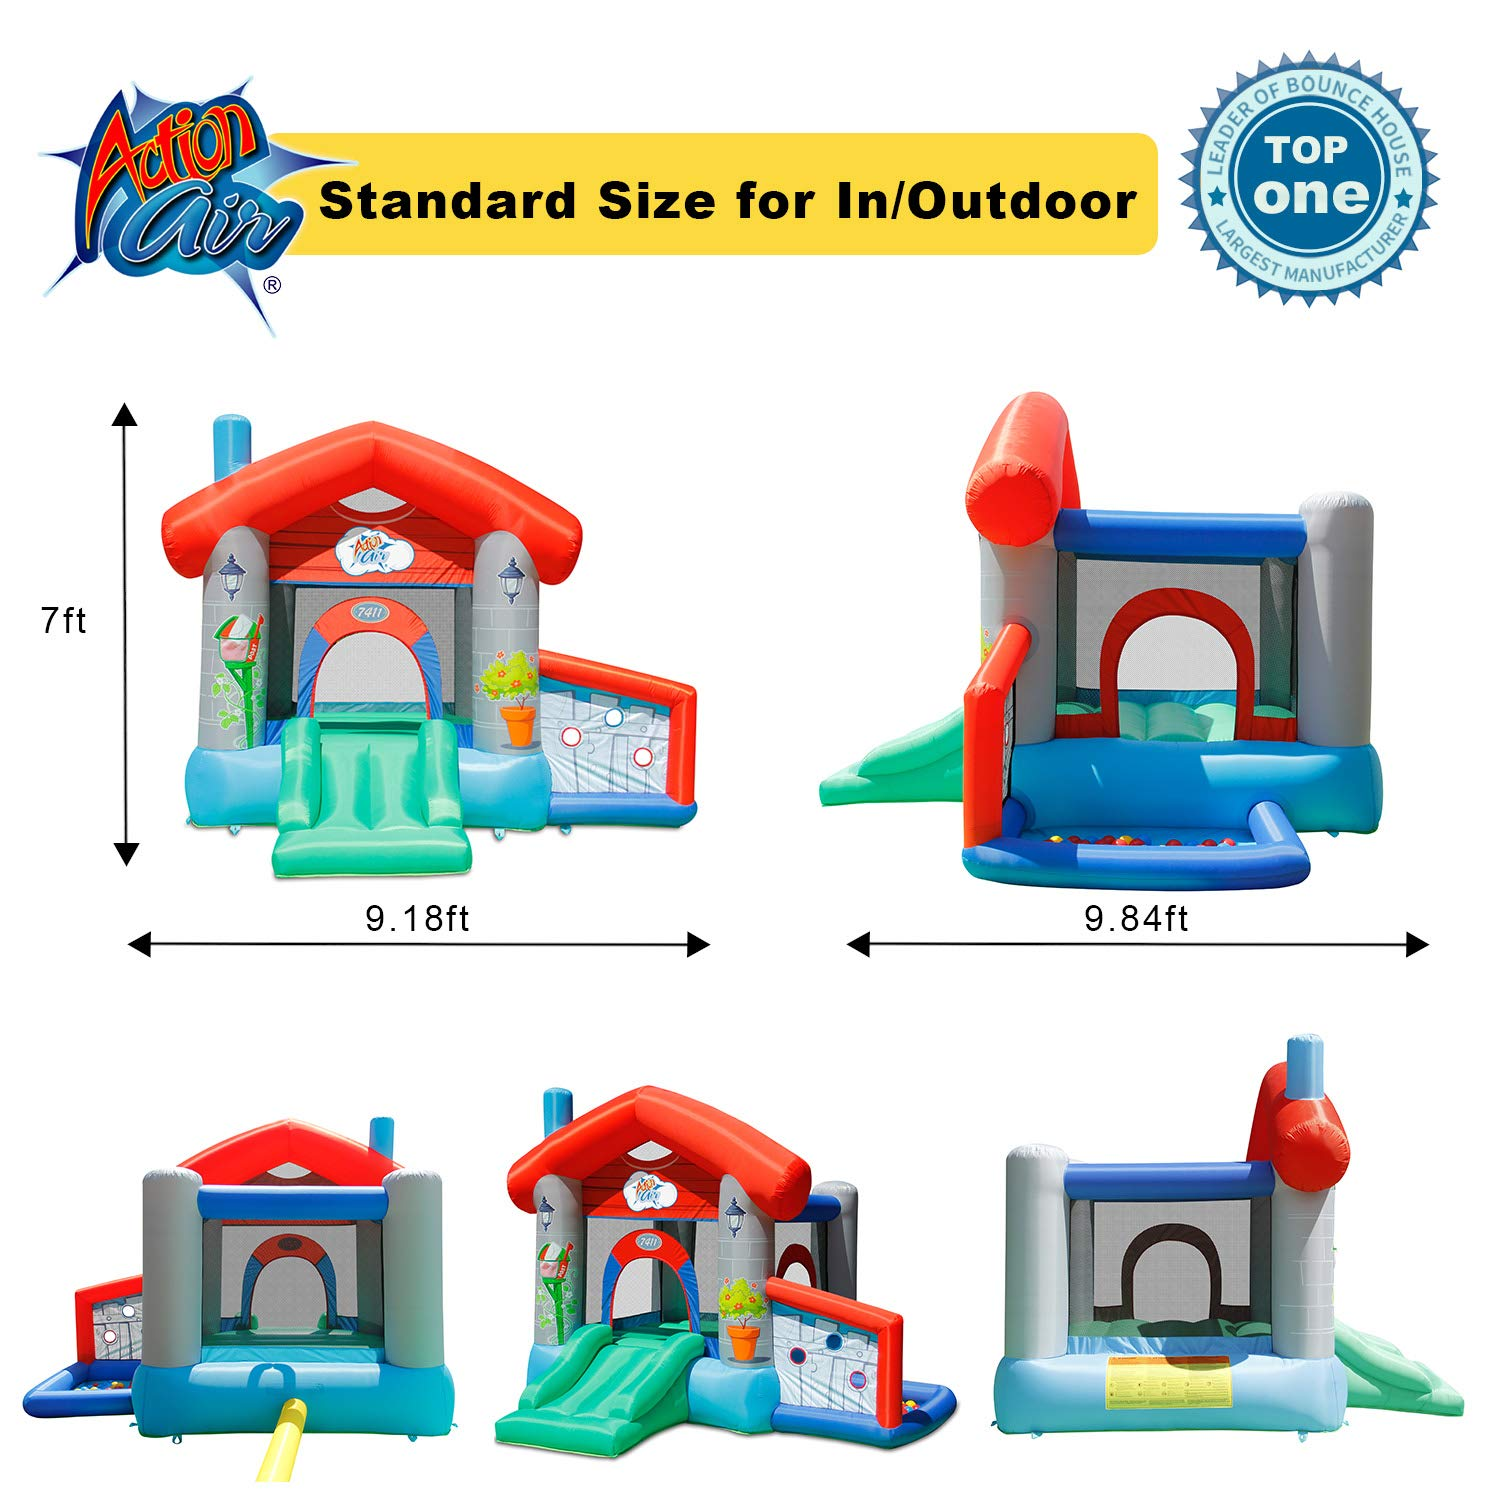 ACTION AIR Bounce House, Air Bouncer with 30 Ball, Inflatable Bouncer with Air Blower, Jumping Castle with Slide, for Outdoor and Indoor, Durable Sewn with Extra Thick Material, Idea for Kids by ACTION AIR (Image #6)